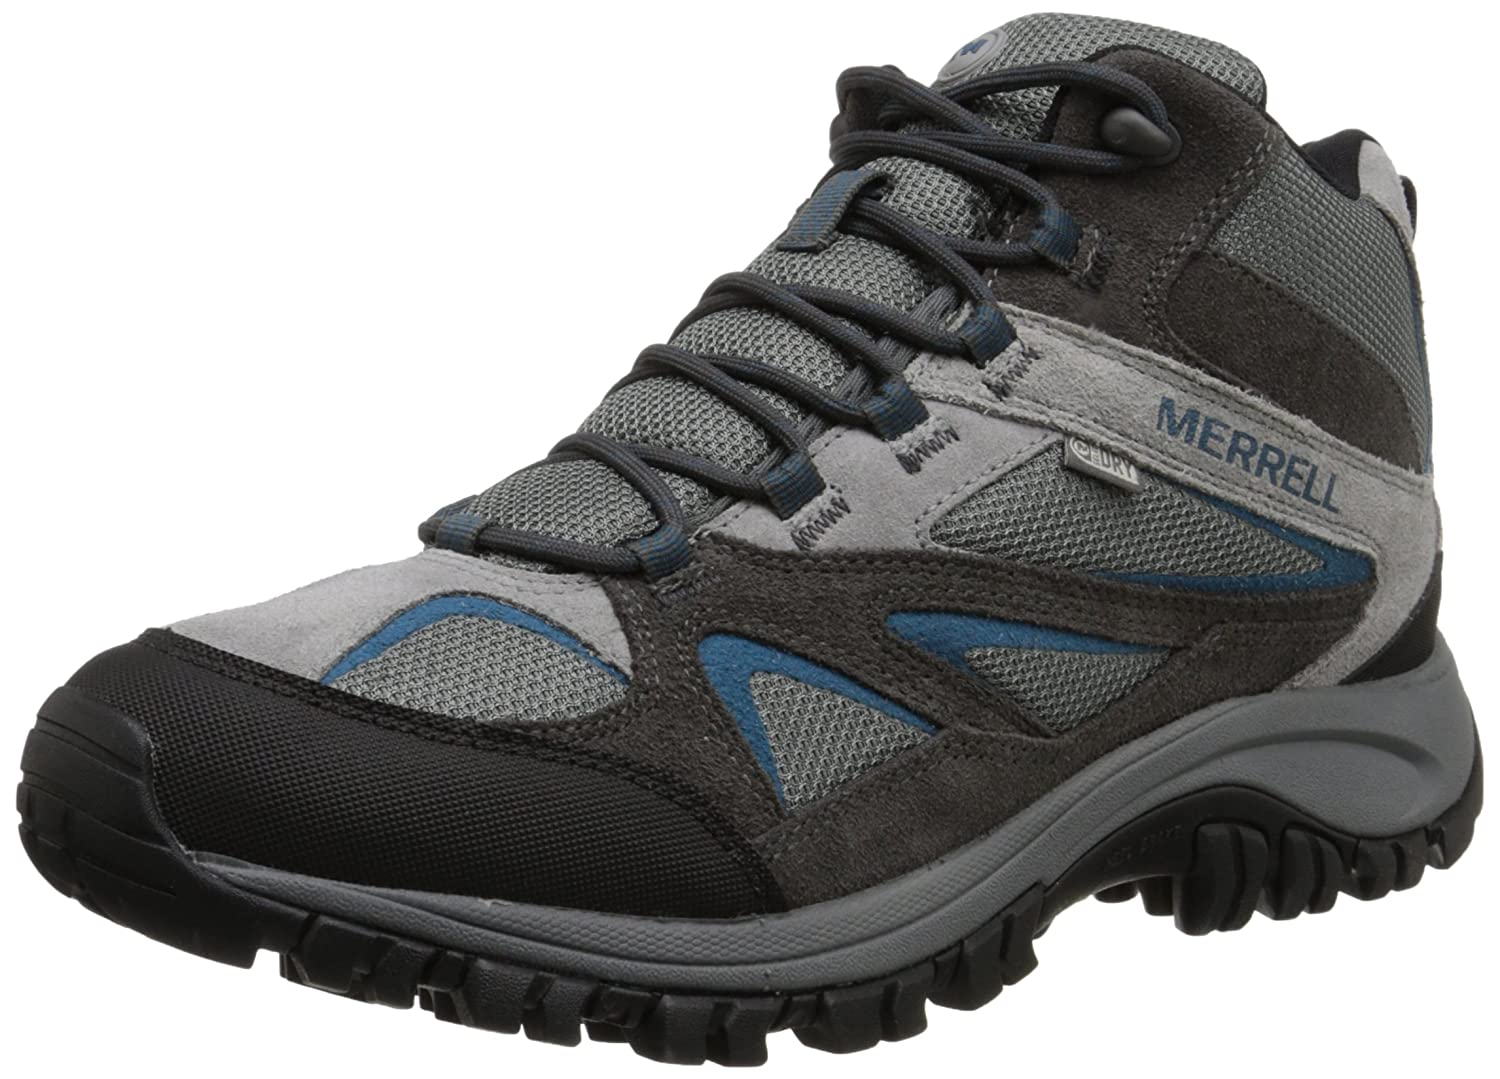 a2325e49e82 Merrell Phoenix Bluff Mid Waterproof Hiking Shoe: Amazon.co.uk ...